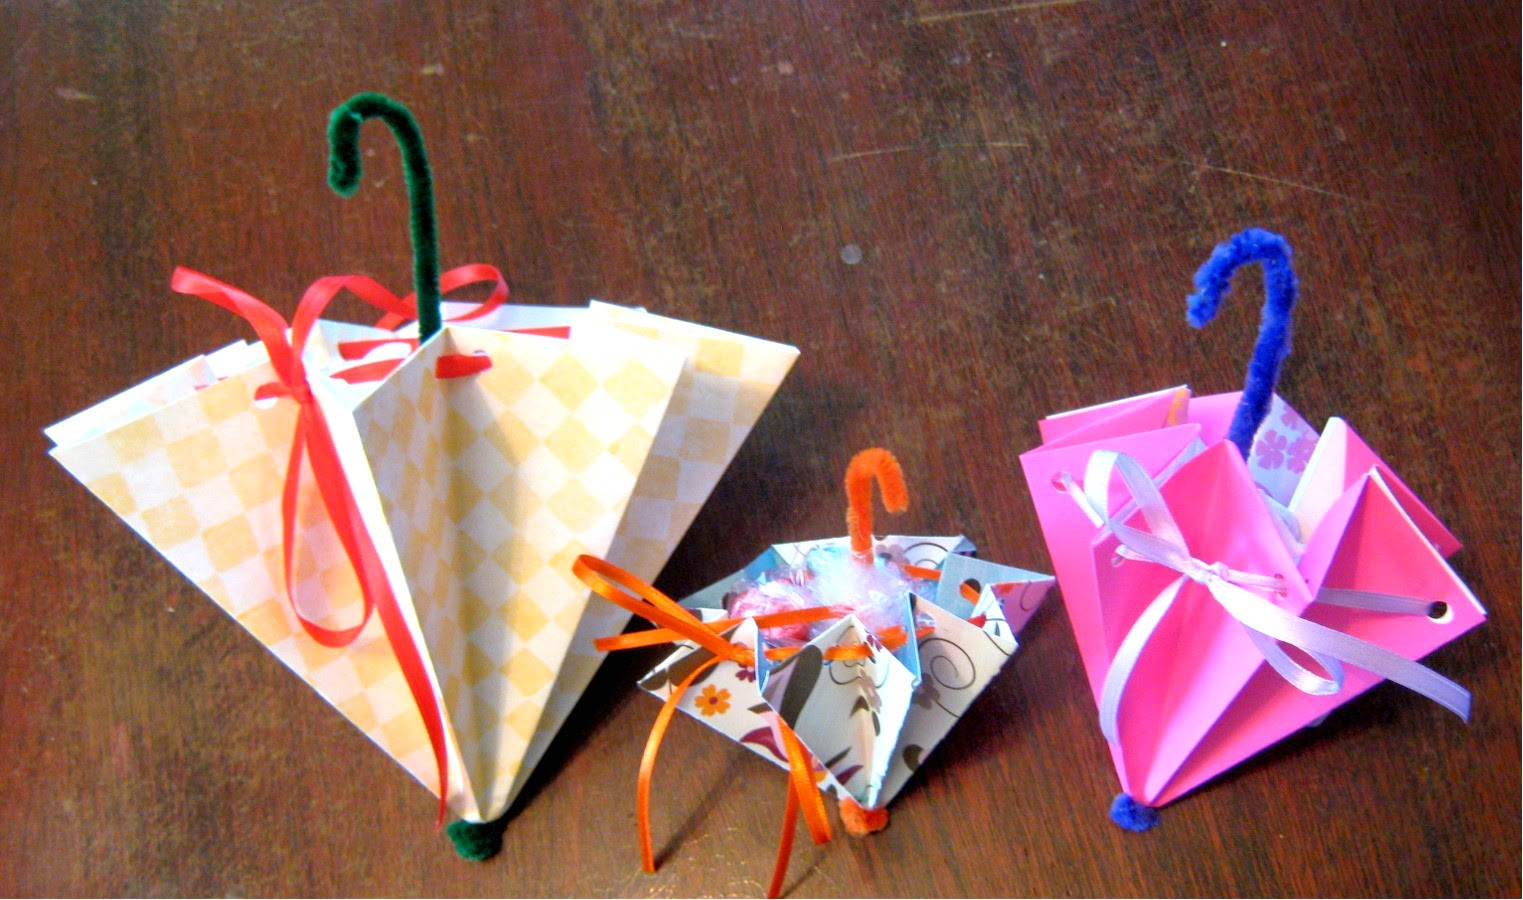 How to make an umbrella gift, decoration, party favor